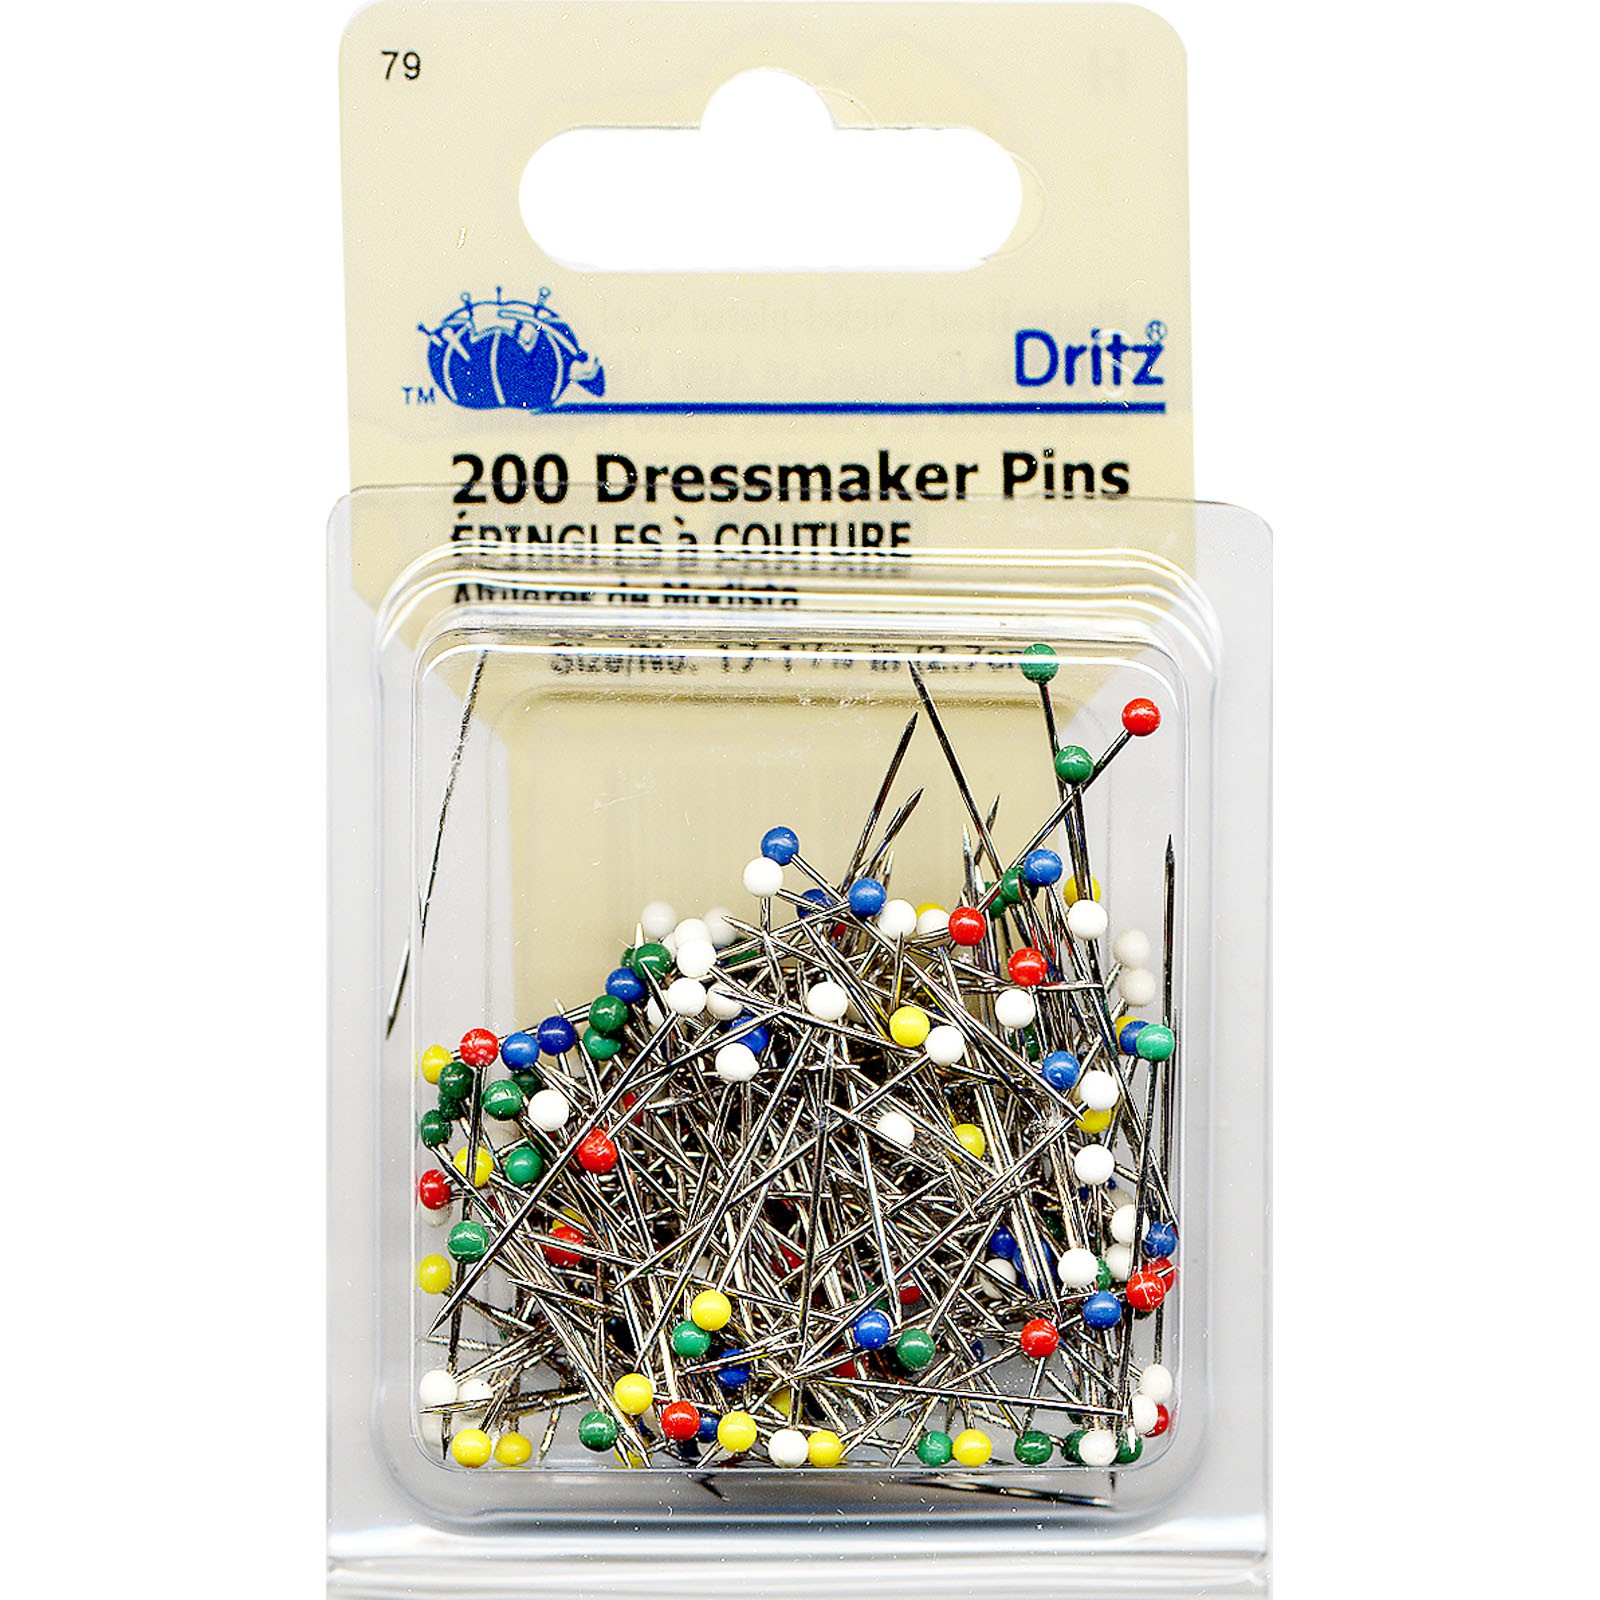 Over The Rainbow Diy Circuit Board Table Decor Nifty Ideas Crafty Crafts Pin Dritz Color Ball Pins Dri79 10625 399 Pack Of 200